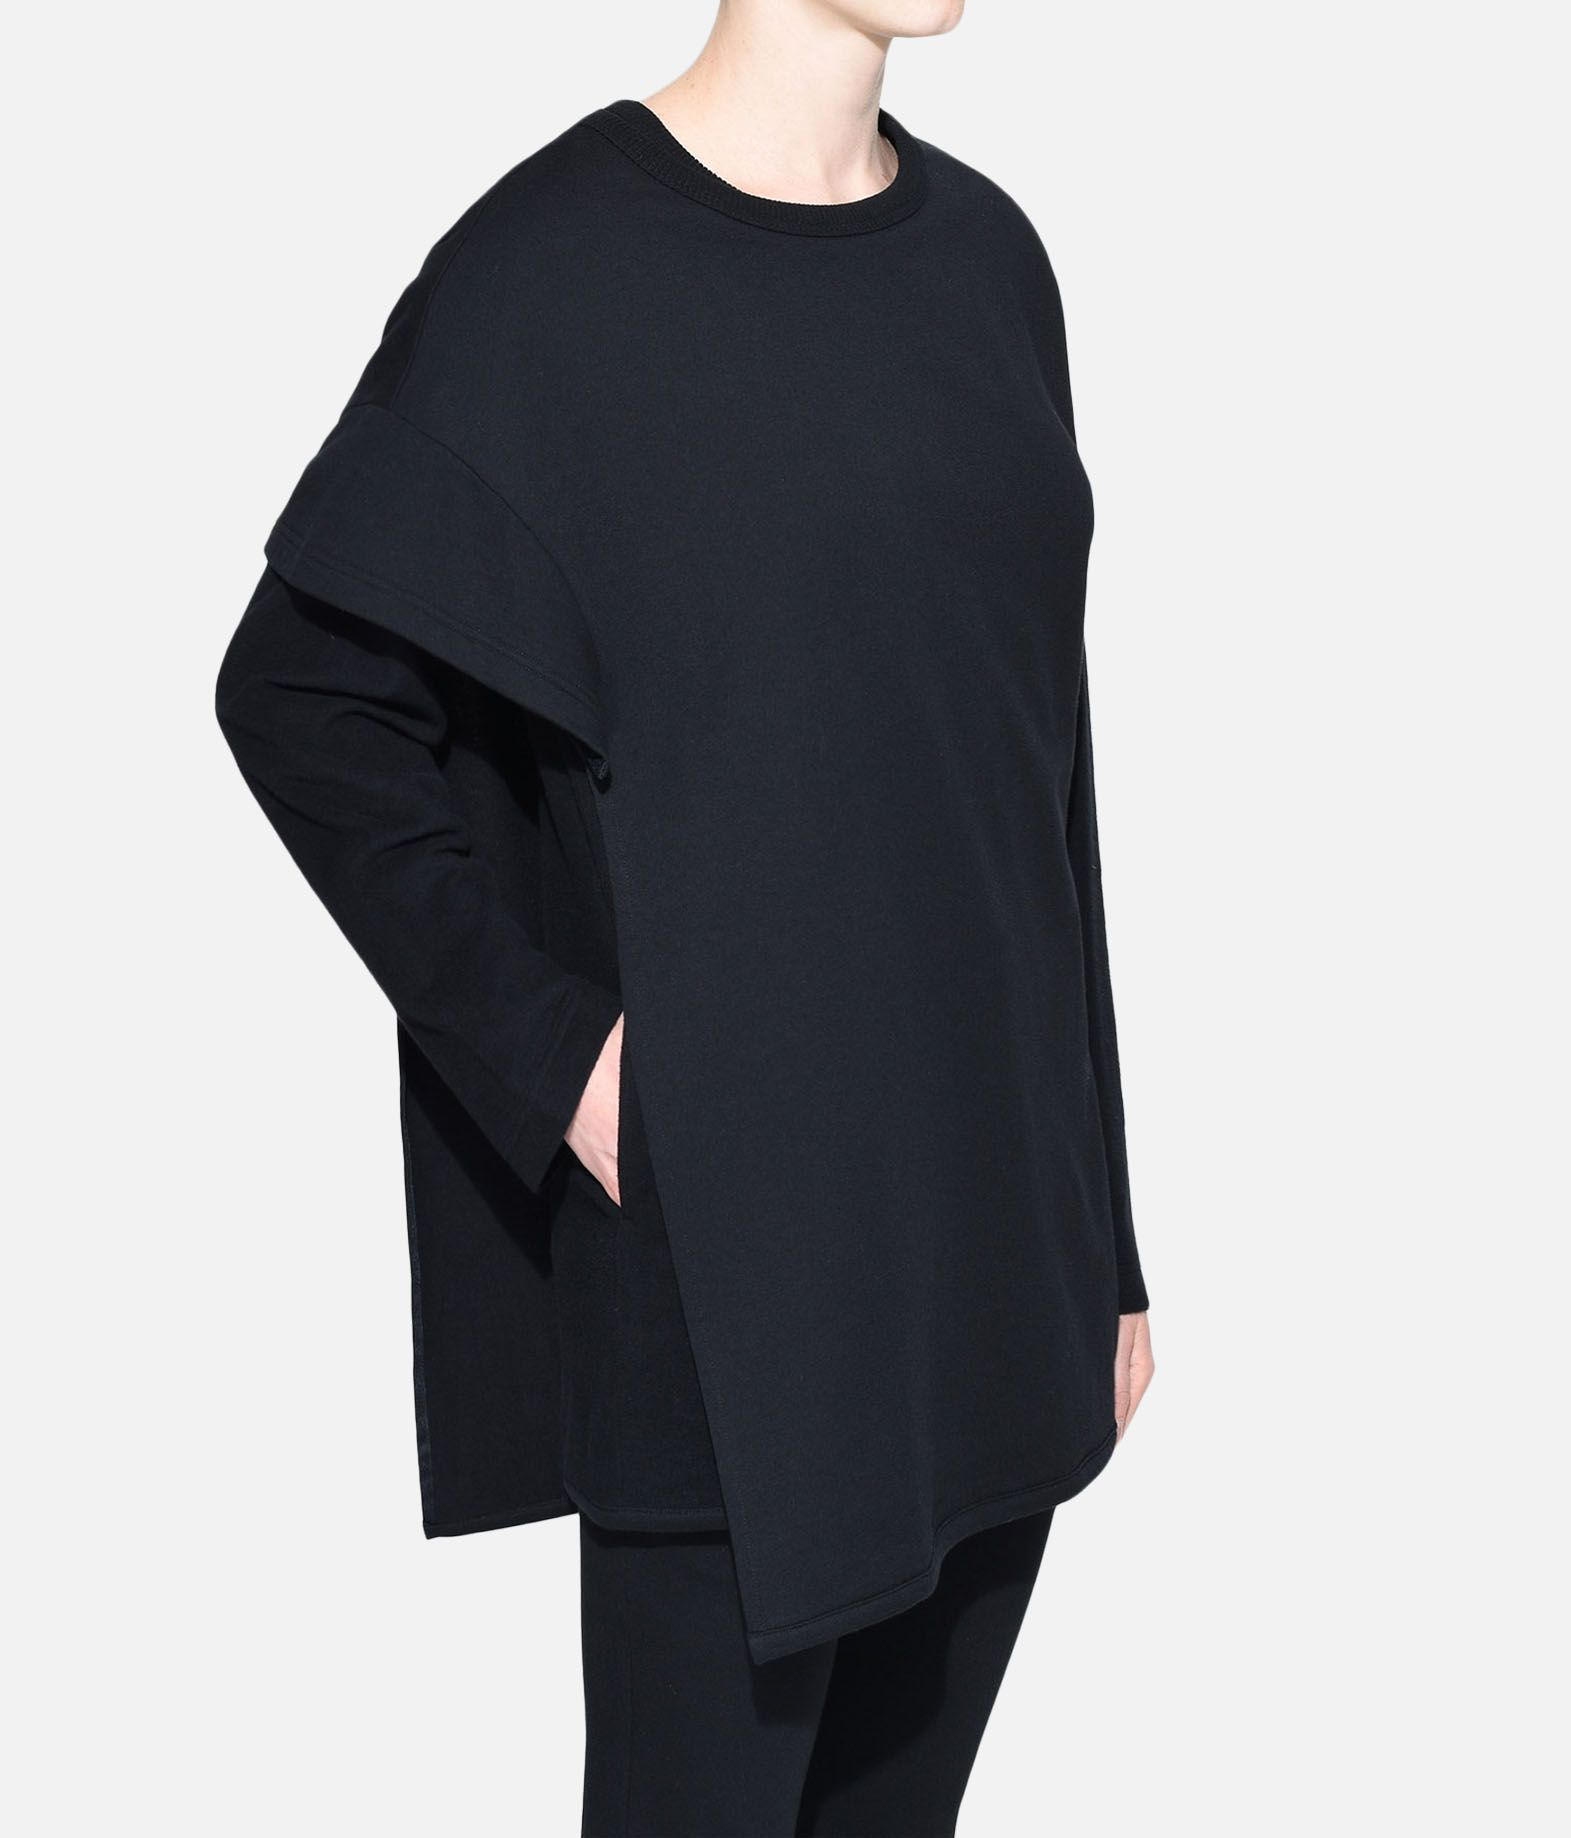 Y-3 Y-3 Two-Layer Fleece Sweater Sweatshirt Woman e